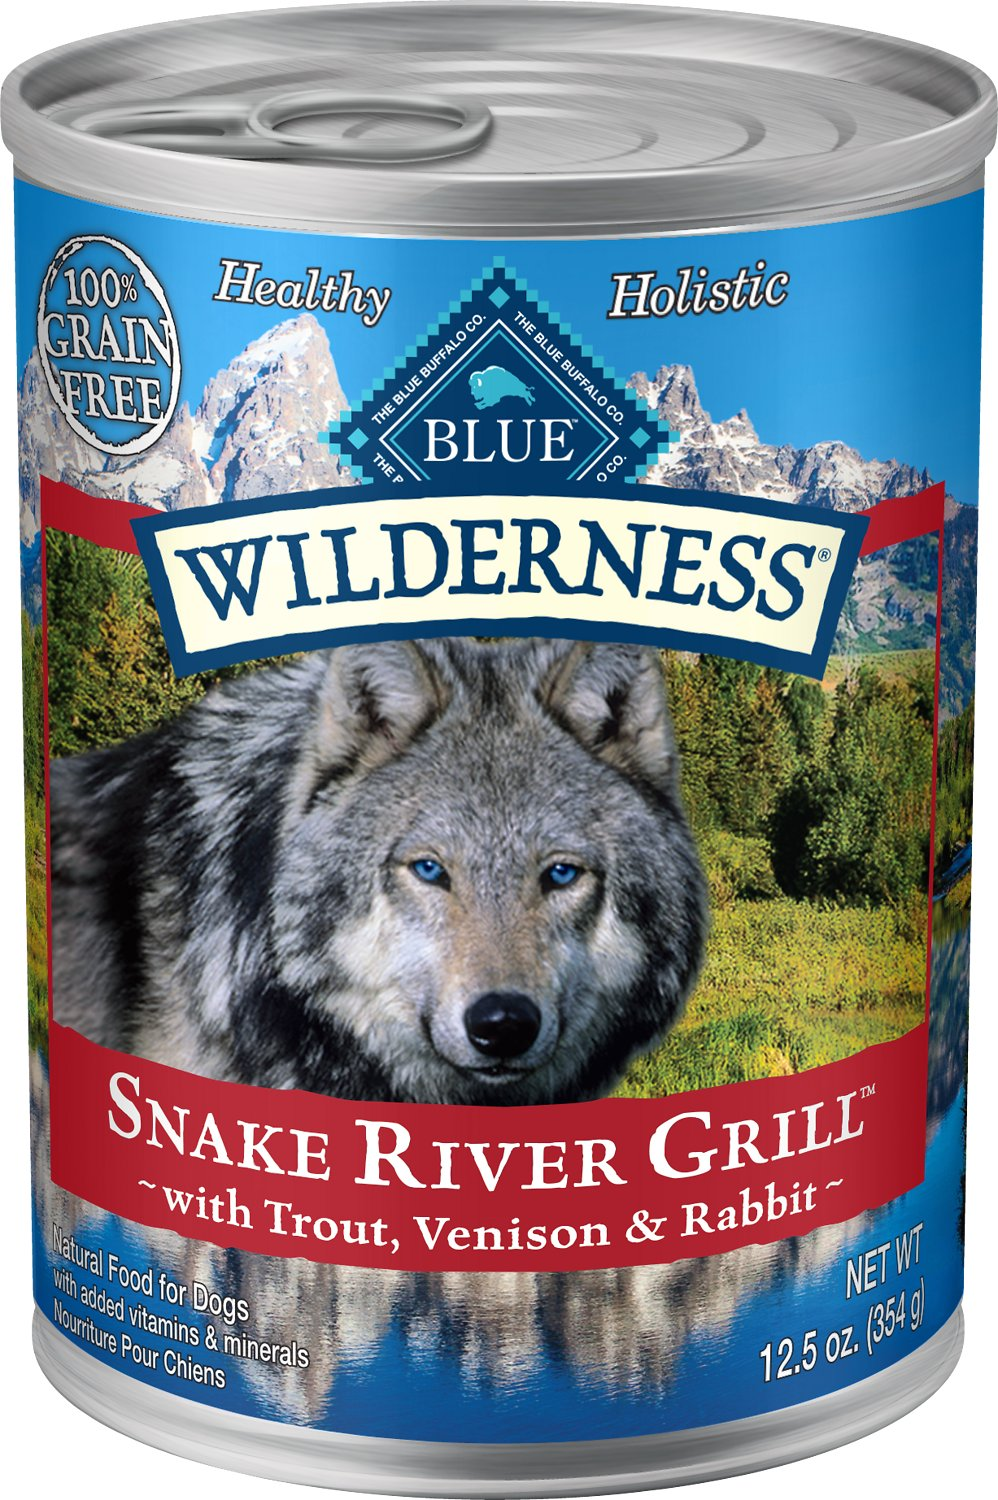 Blue Buffalo Wilderness Snake River Grill Trout, Venison & Rabbit Formula Grain-Free Canned Dog Food, 12.5-oz